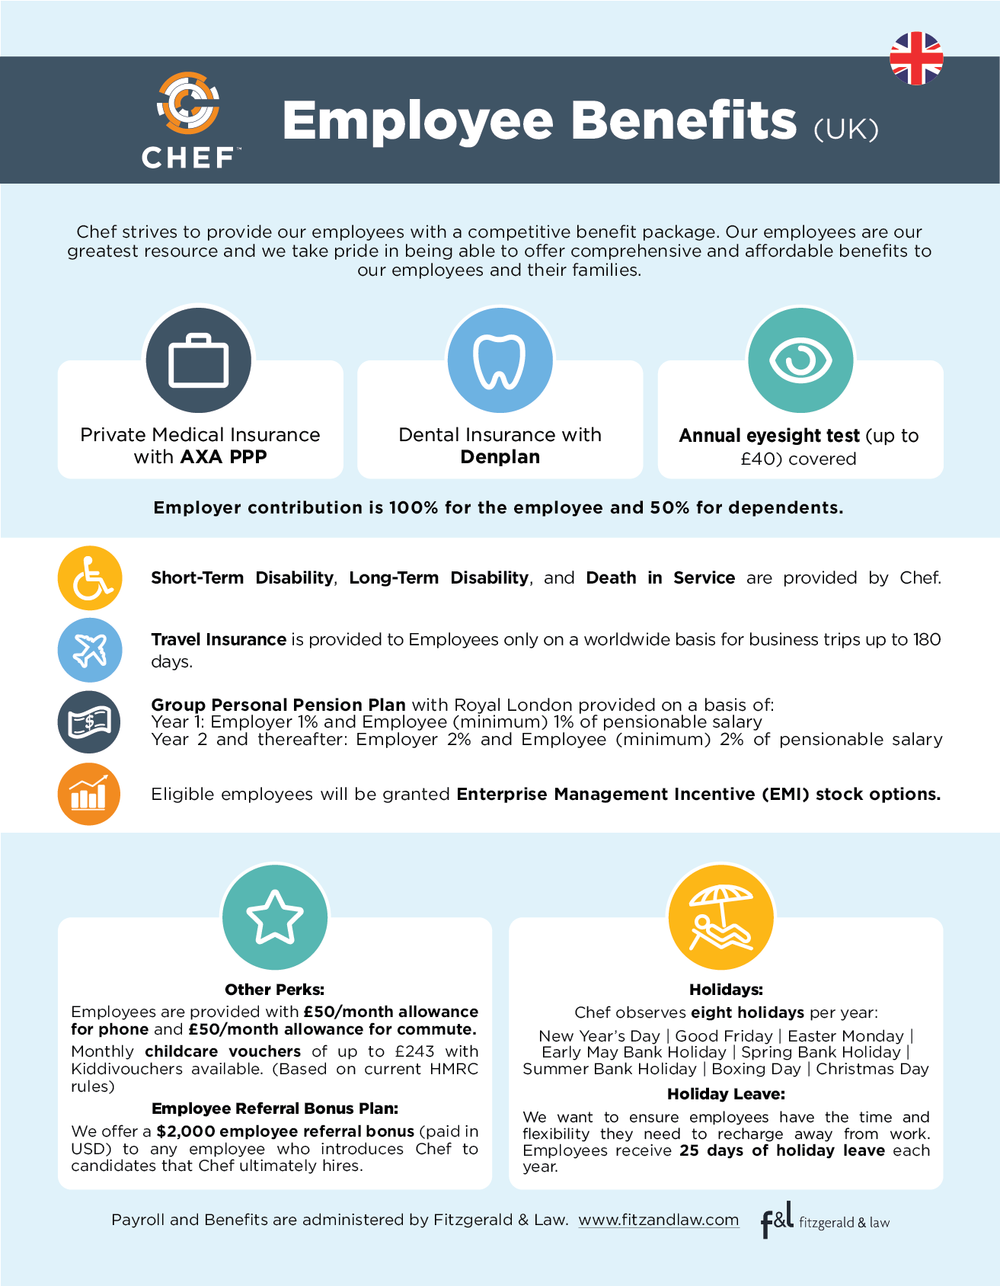 chef employee benefits amanda mccammon us and uk benefits summary infographic design for chef software